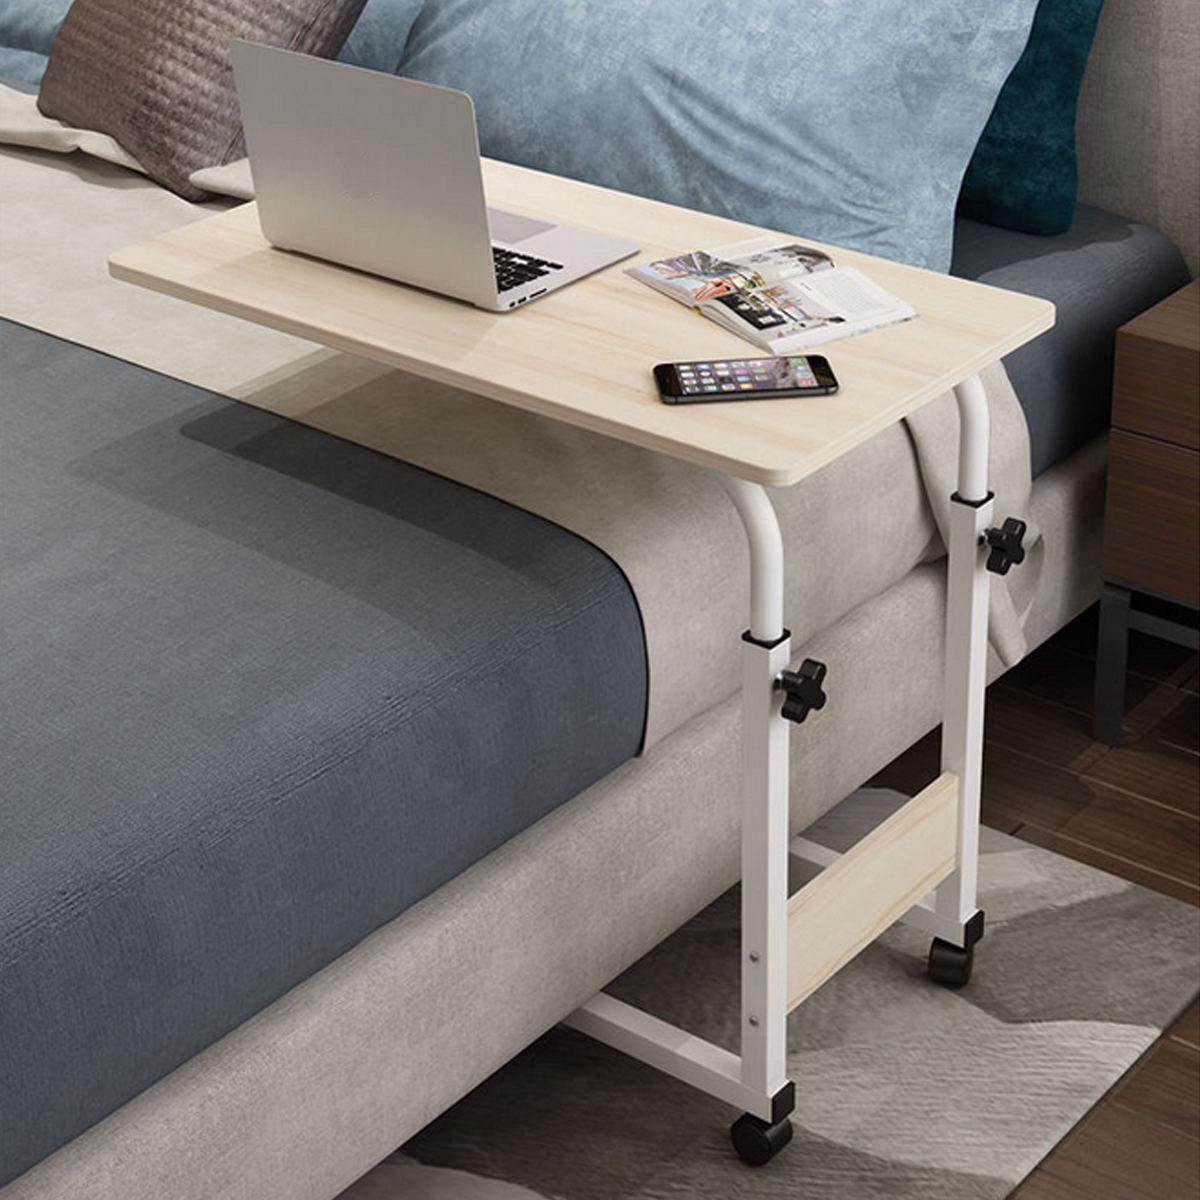 Computer Desk Height Adjustable Laptop Stand Desk Rolling Cart Home Office Chair Can Be Lifted And Lowered Computer Desk Bedside Table Folding Study Writing Desk Walmart Com Walmart Com